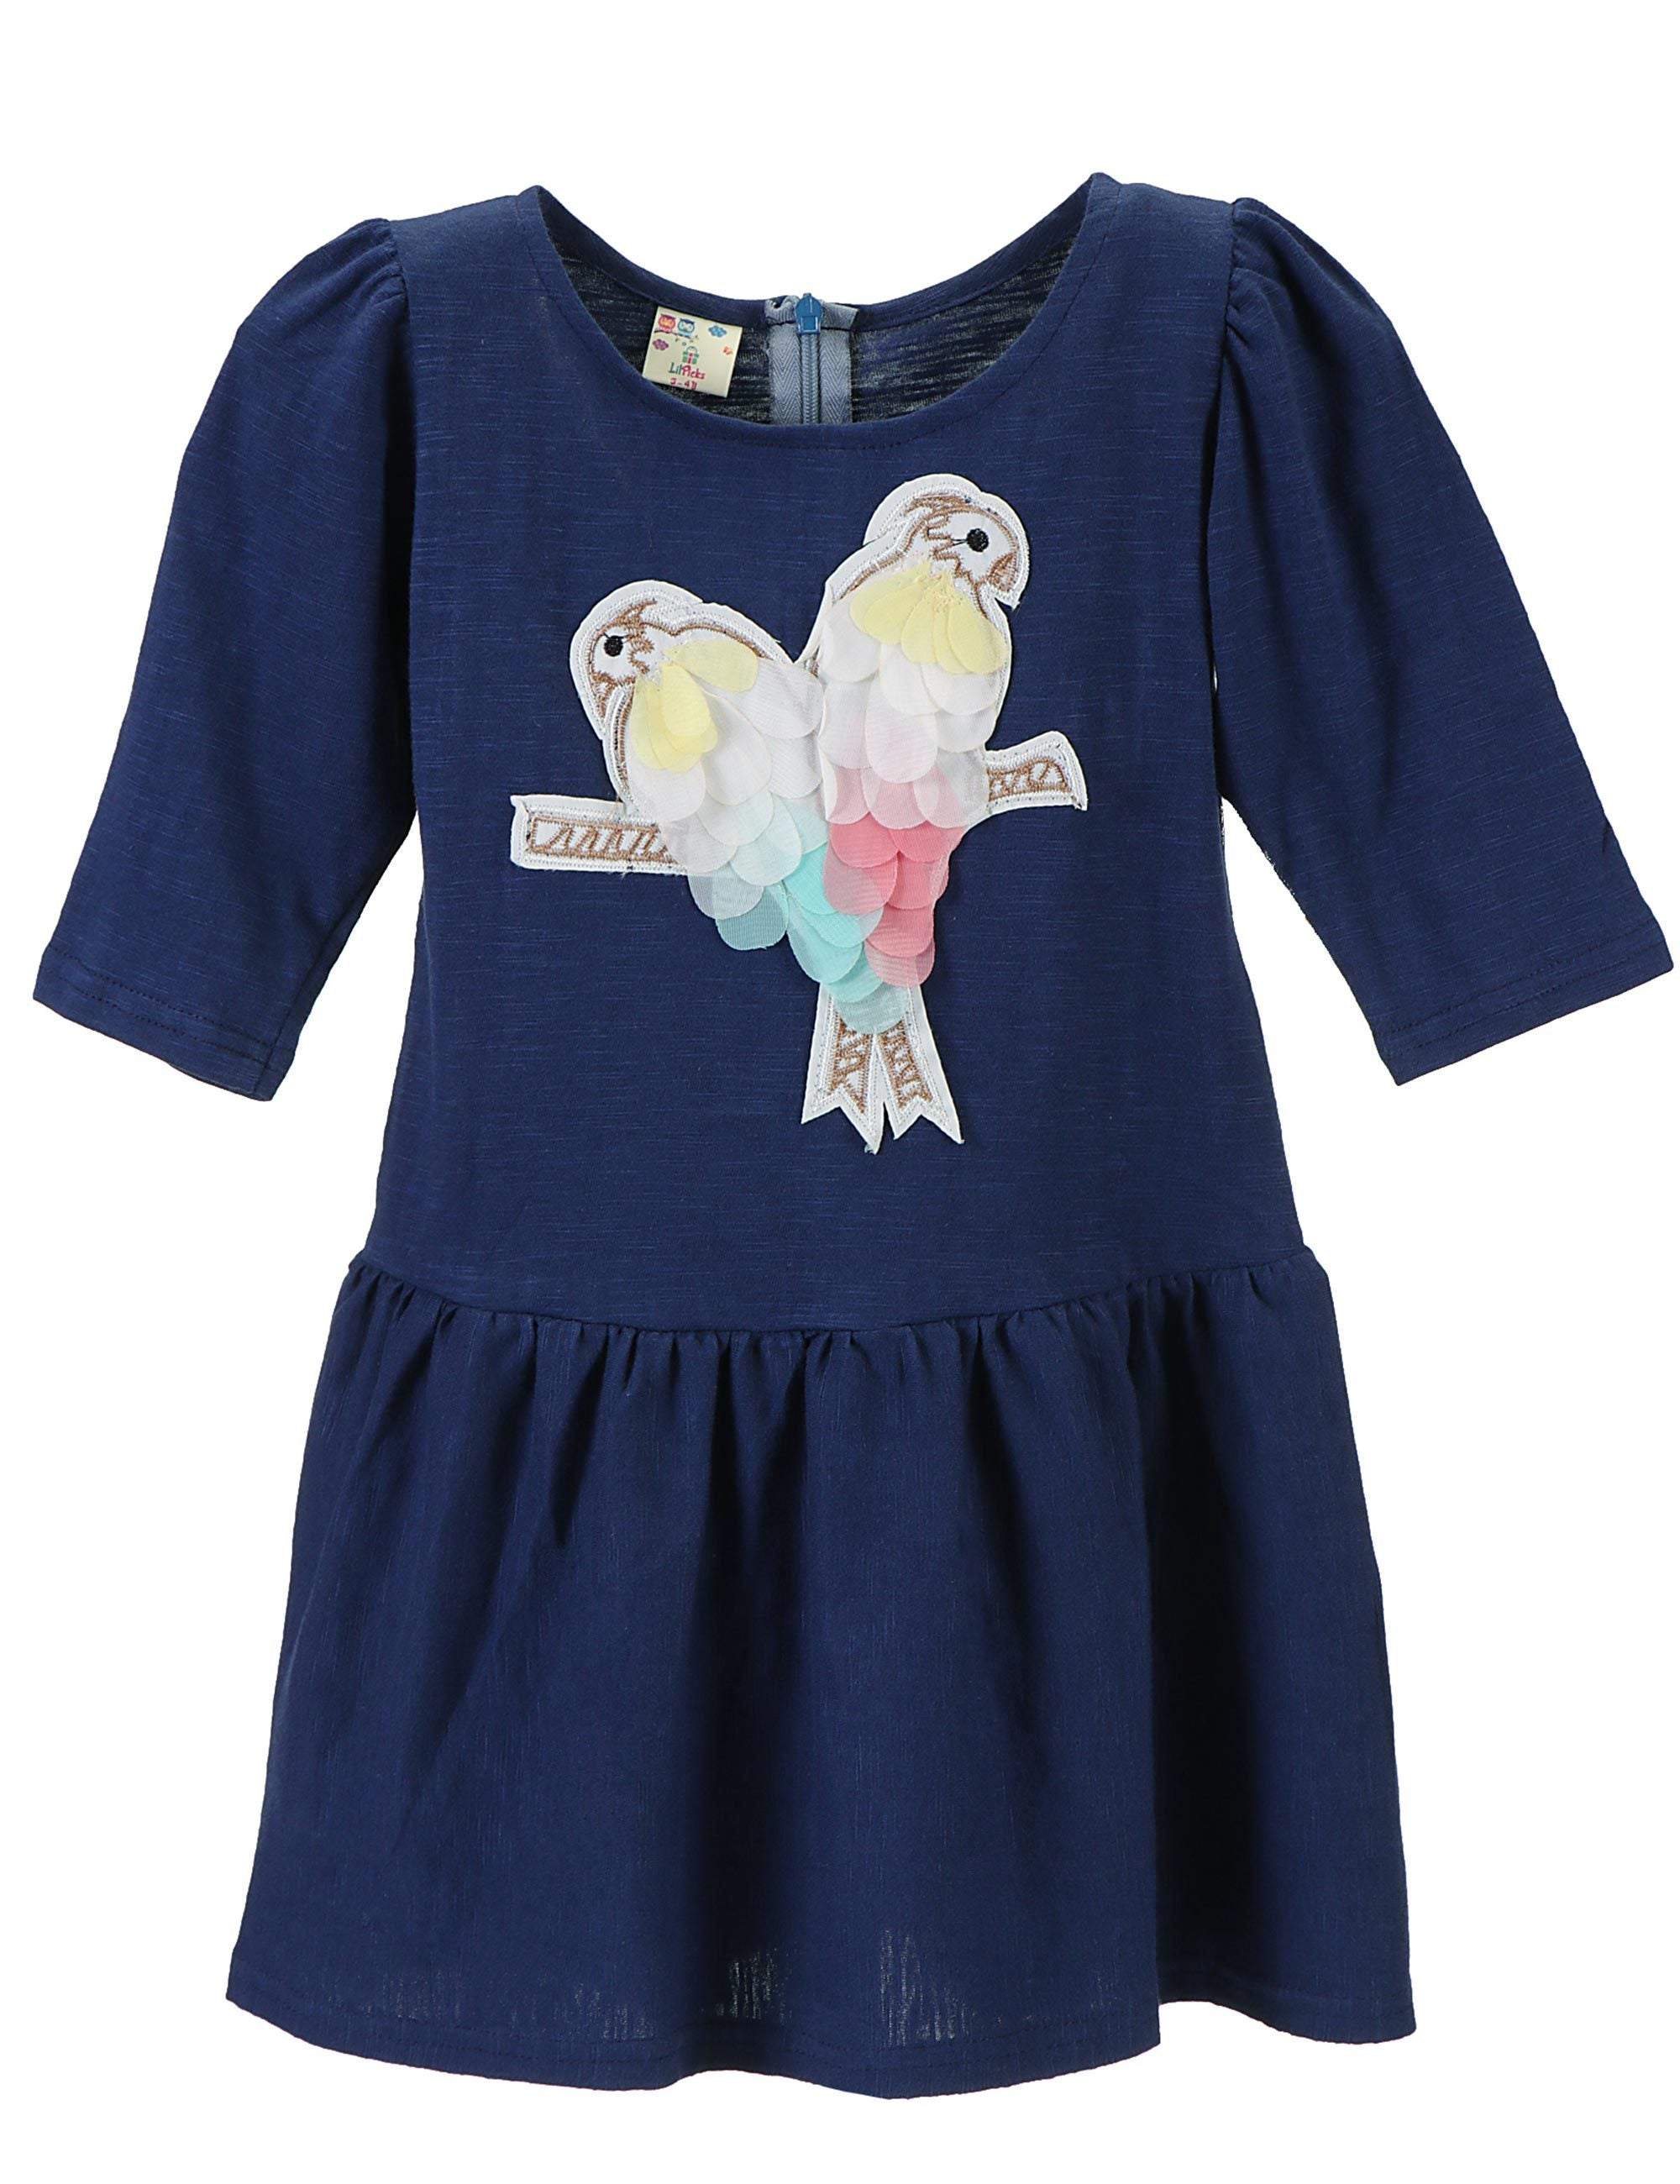 Indigo Blue Parrot Patch Dress for Girls